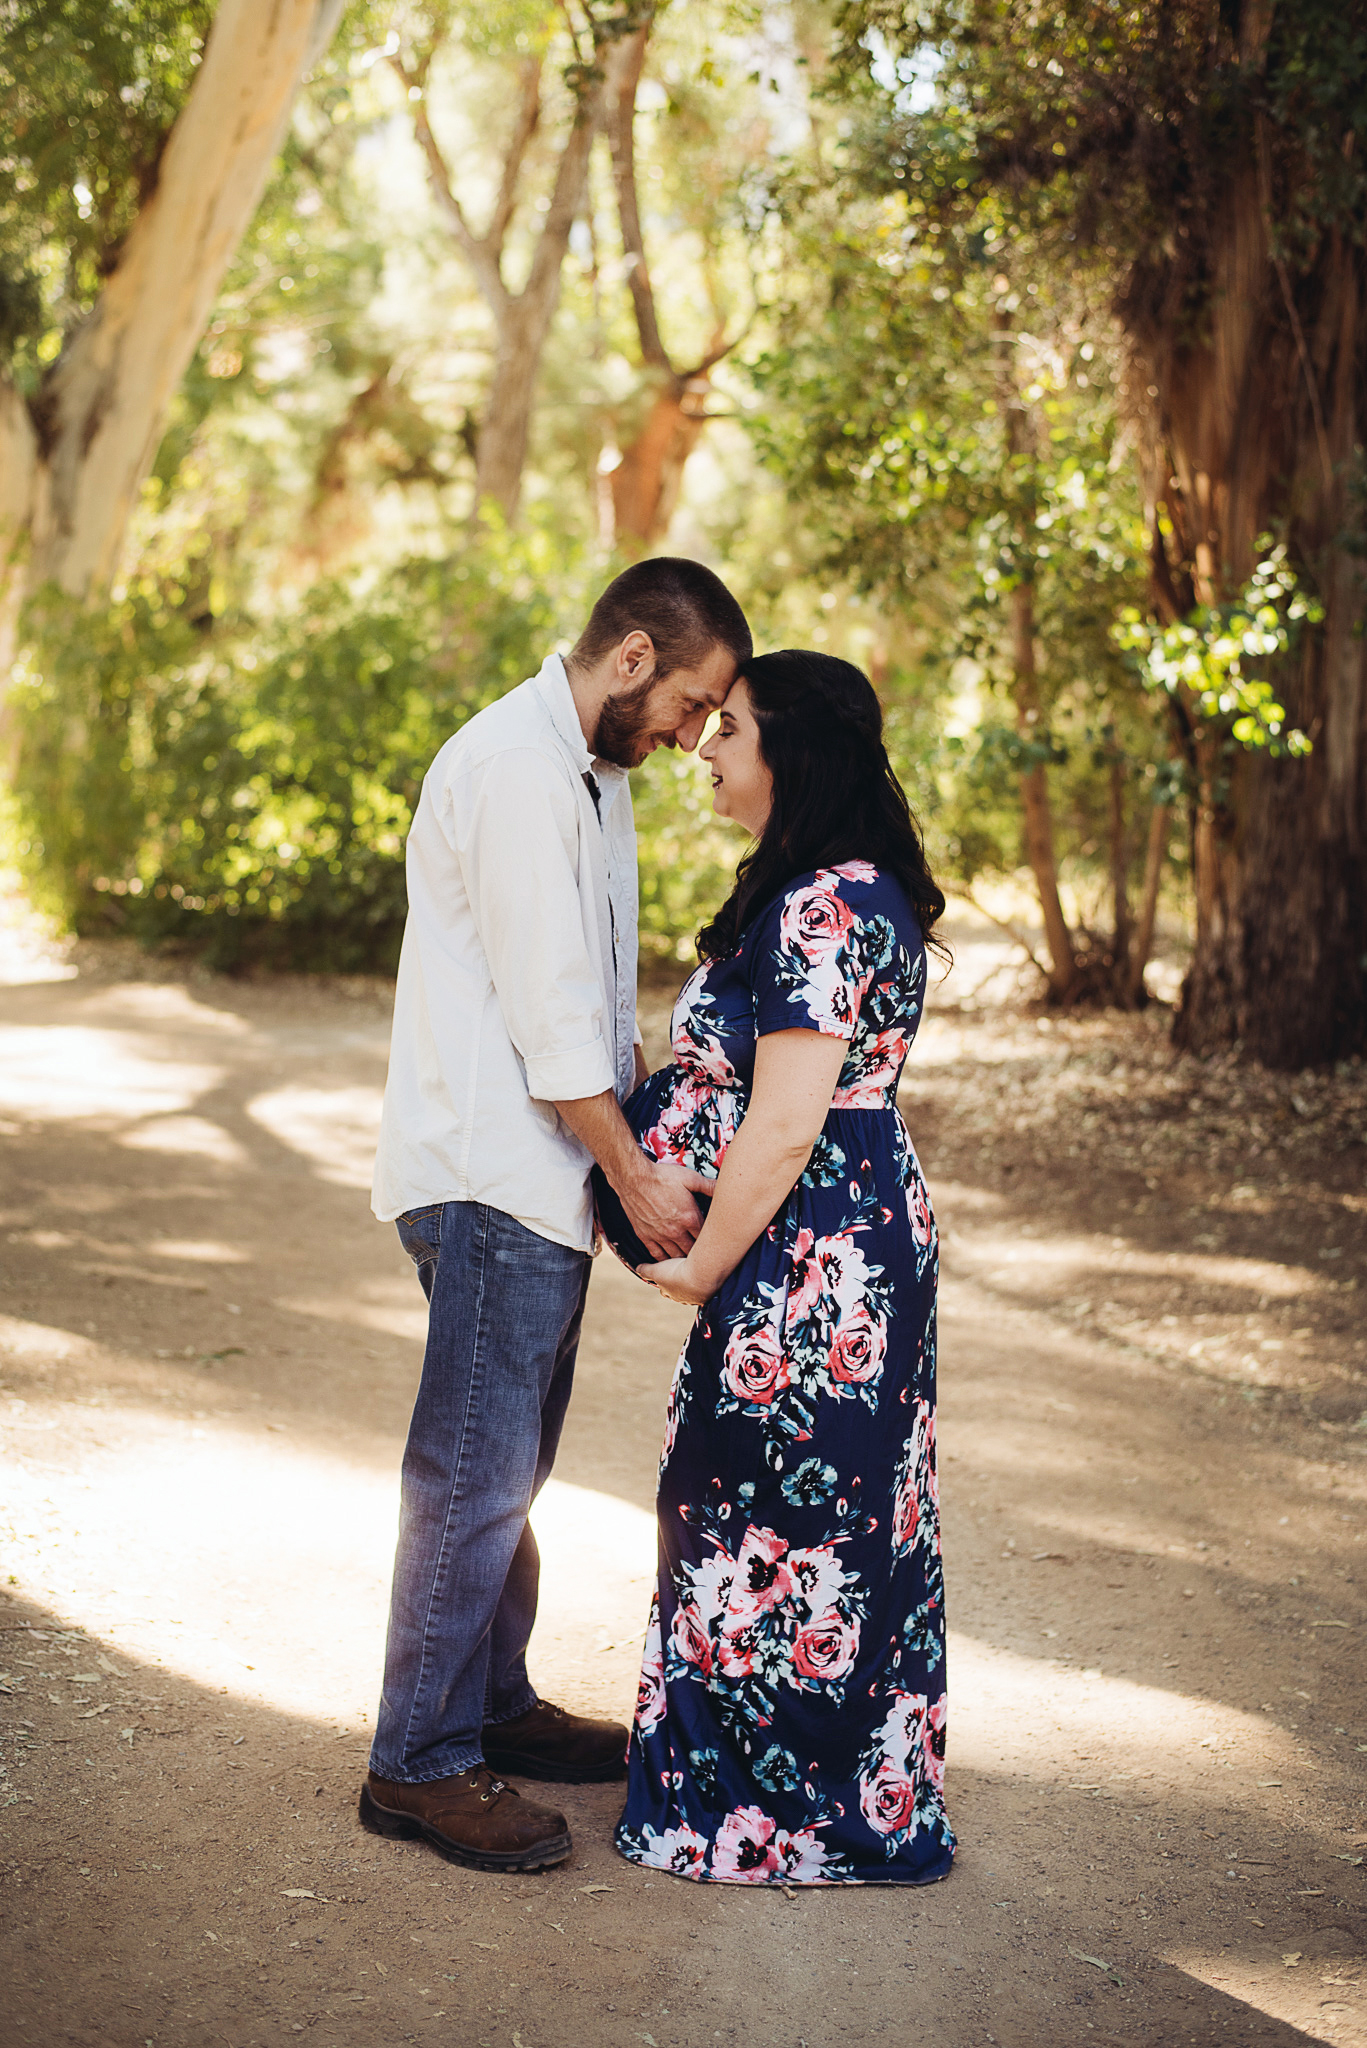 boyce-thompson-arboretum-maternity-photos-elemental-fotos-andrew-ybanez-19.jpg